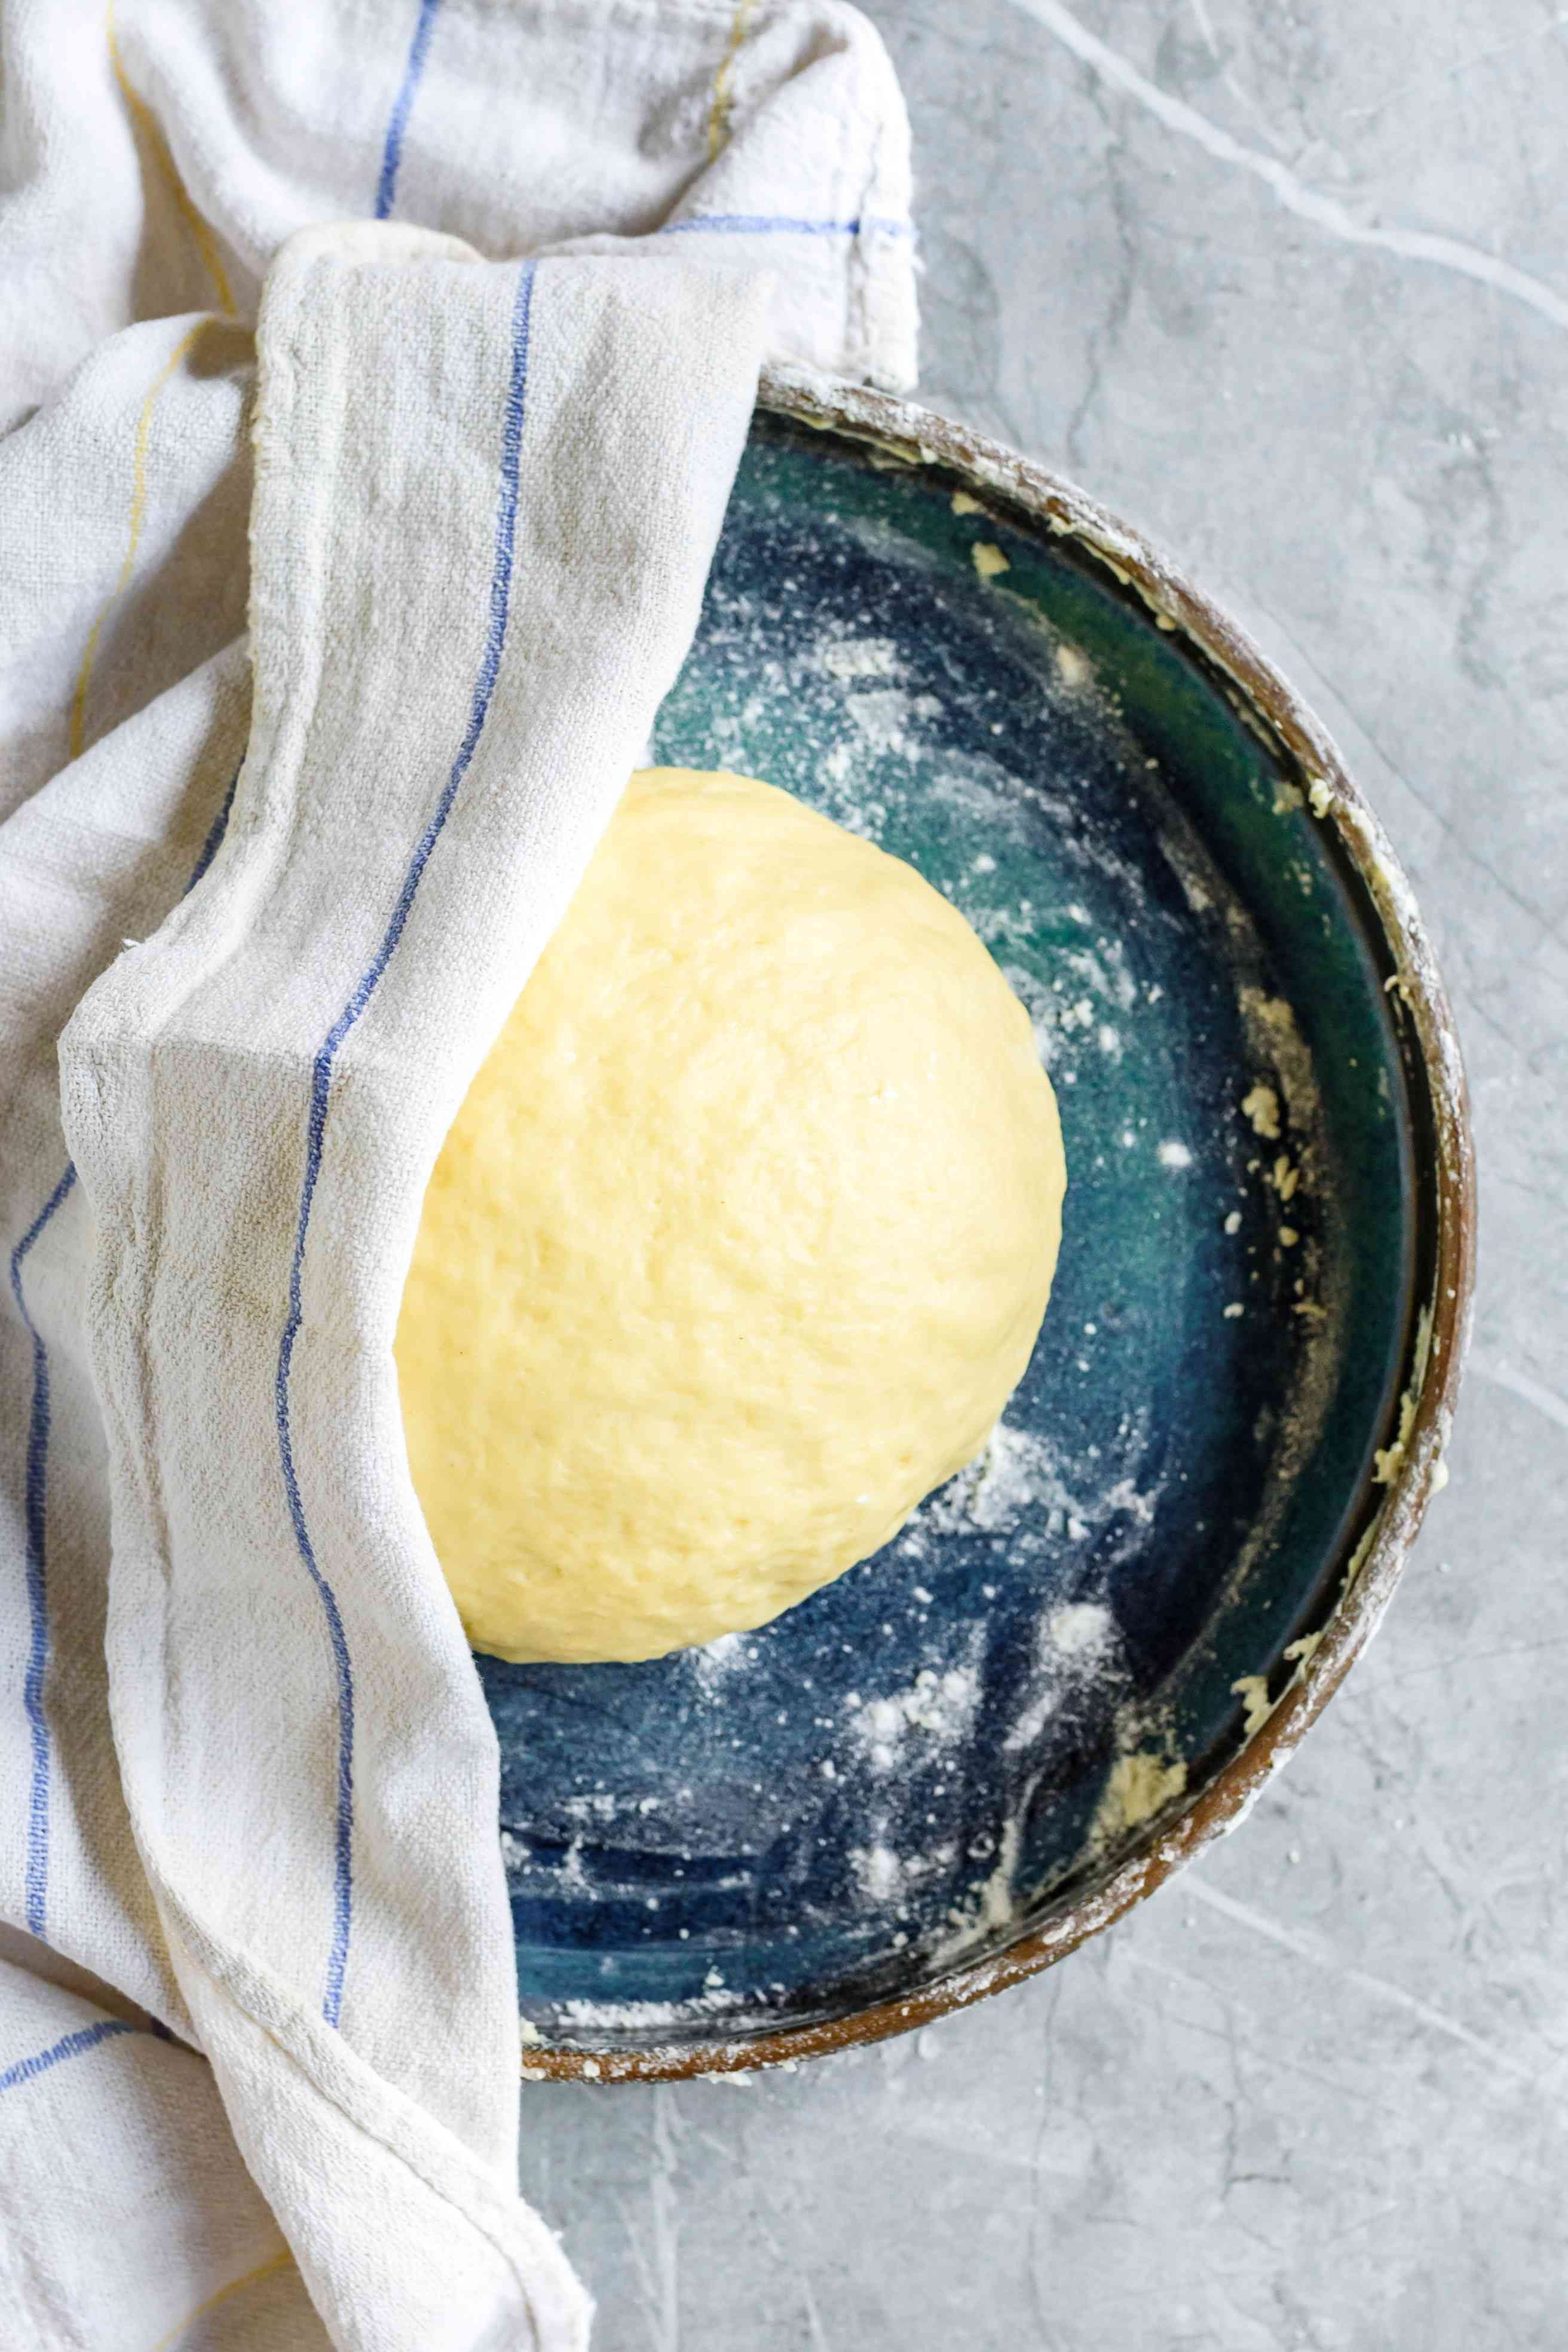 Dough in blue bowl covered by kitchen towel